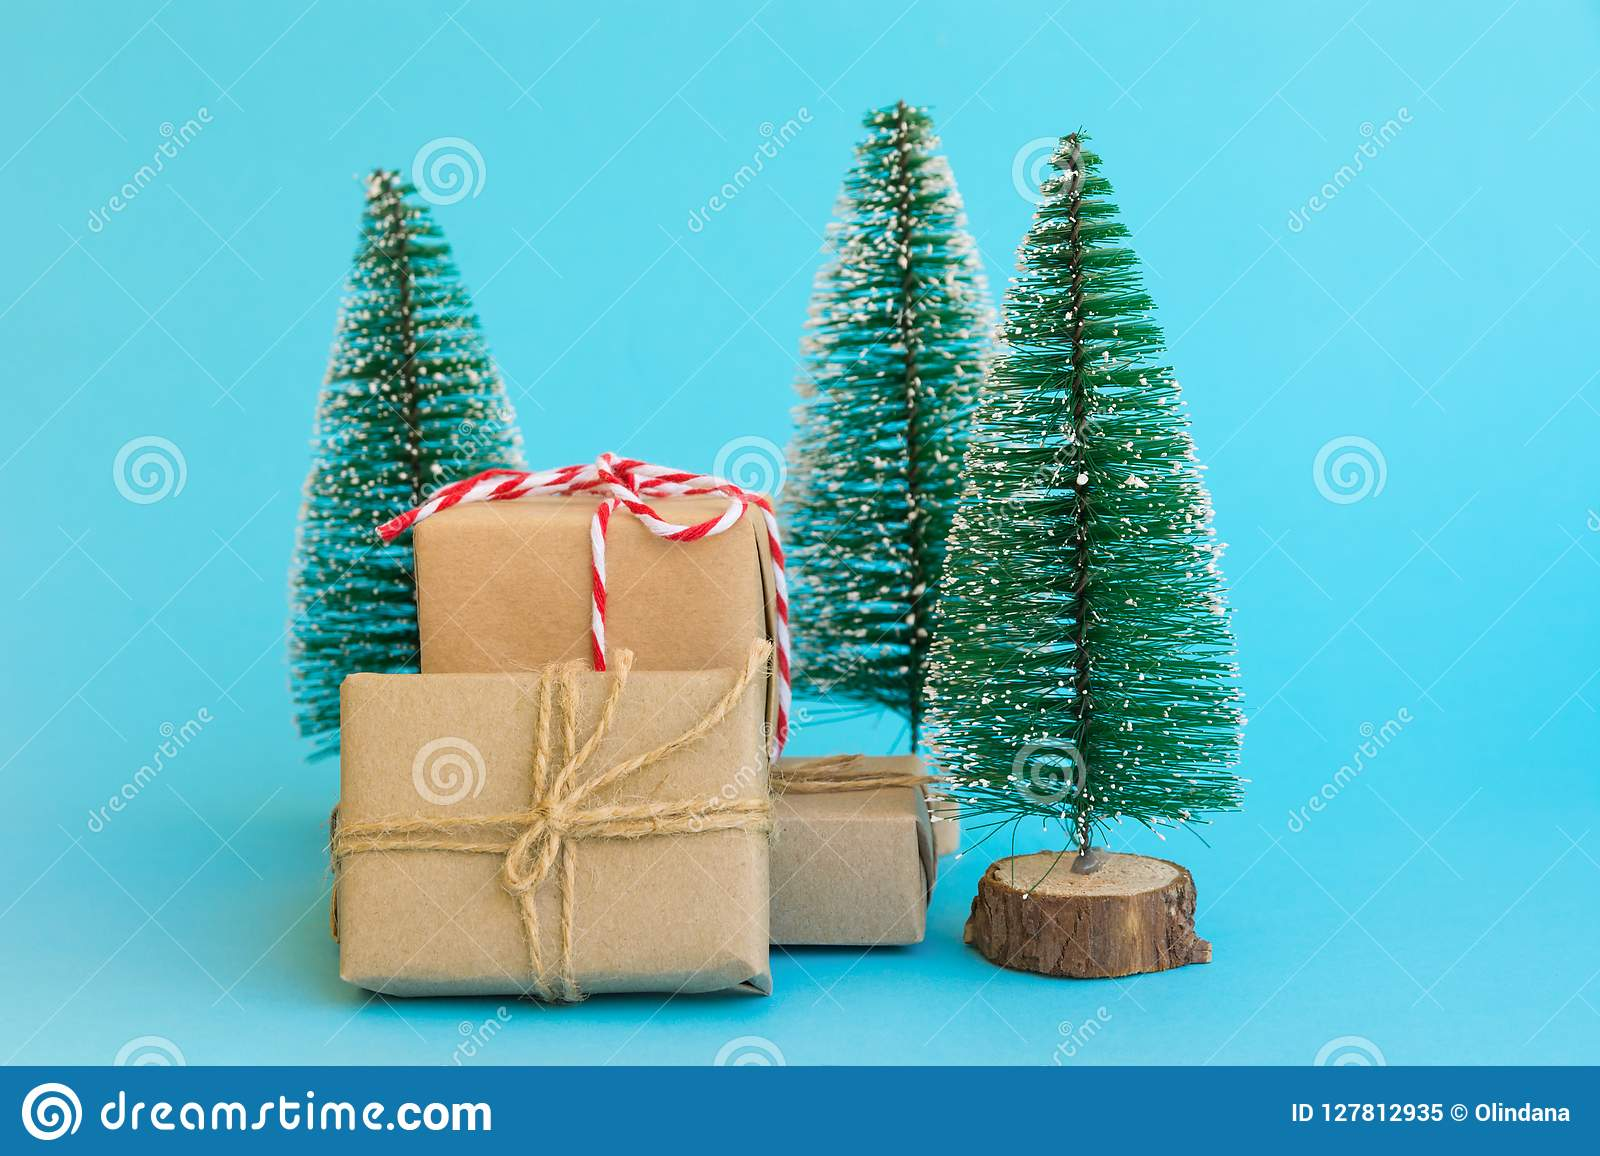 Pile of gift boxes wrapped in craft paper tied with twine red white ribbon Christmas trees on mint blue background. New Year